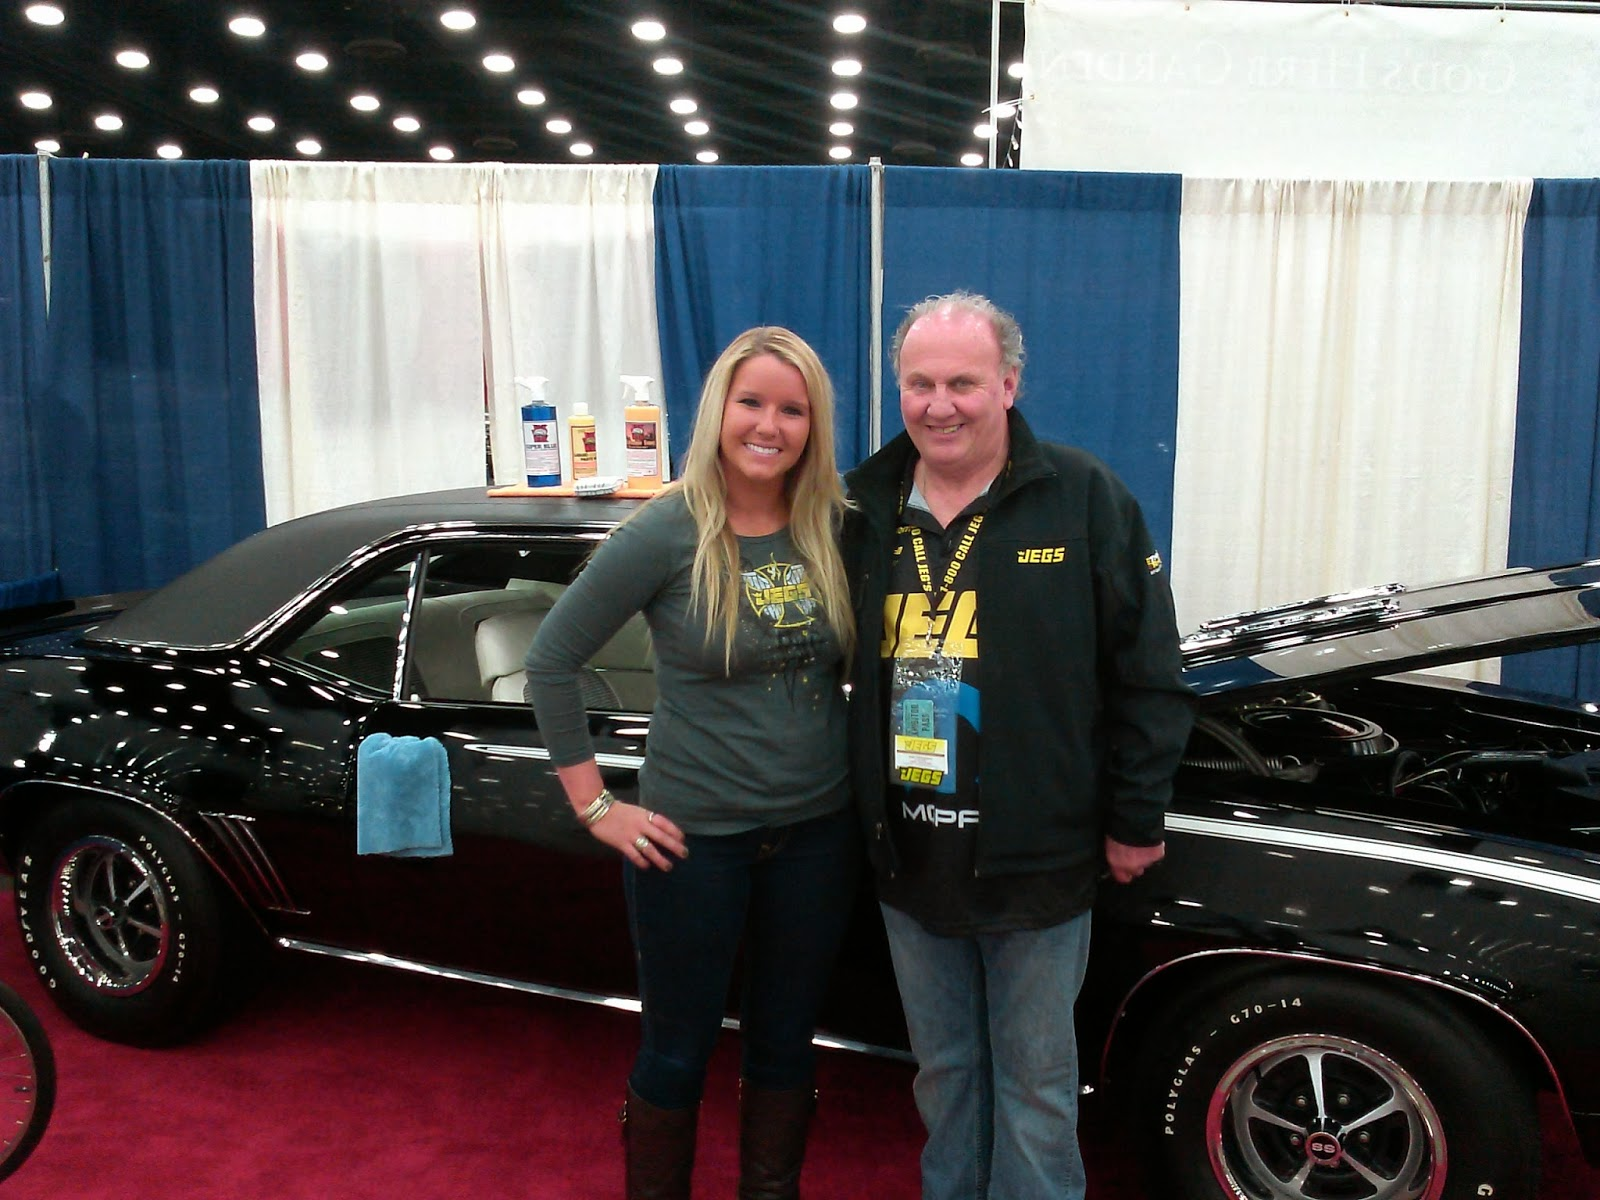 Jegs Carl Casper Auto Show Jax Wax Customer